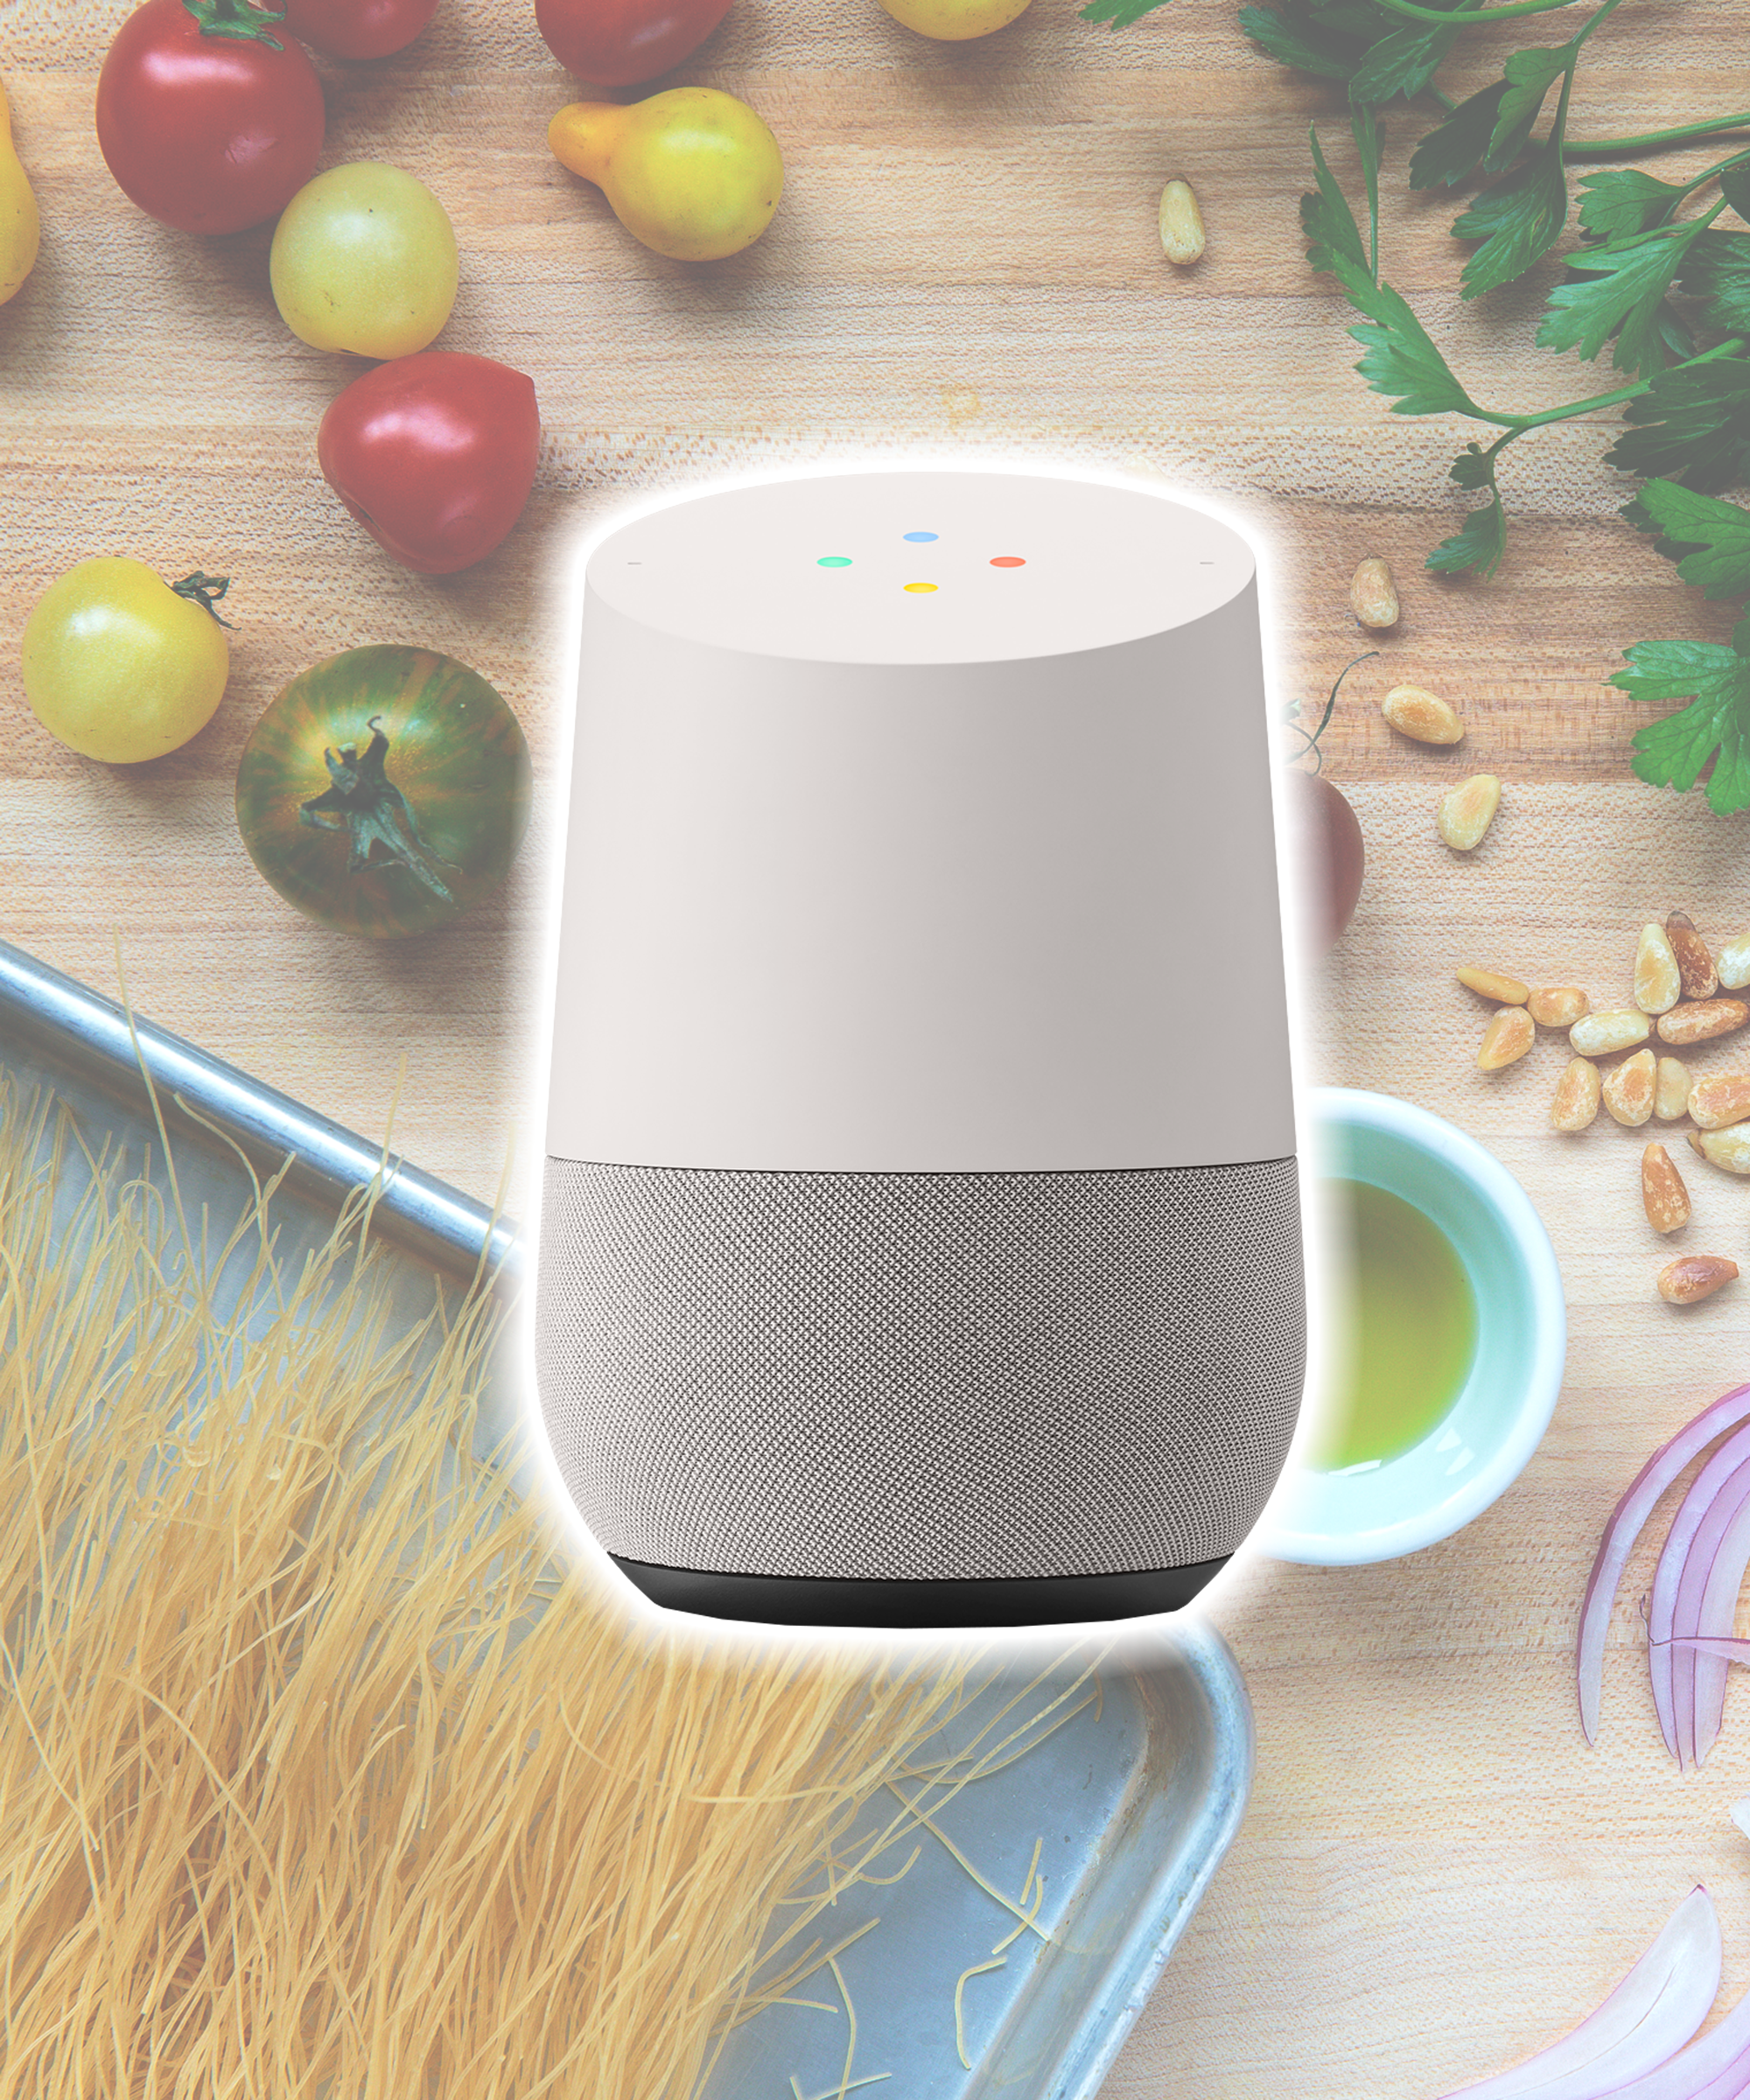 Google Home hoping to improve the kitchen with 'start cooking' command